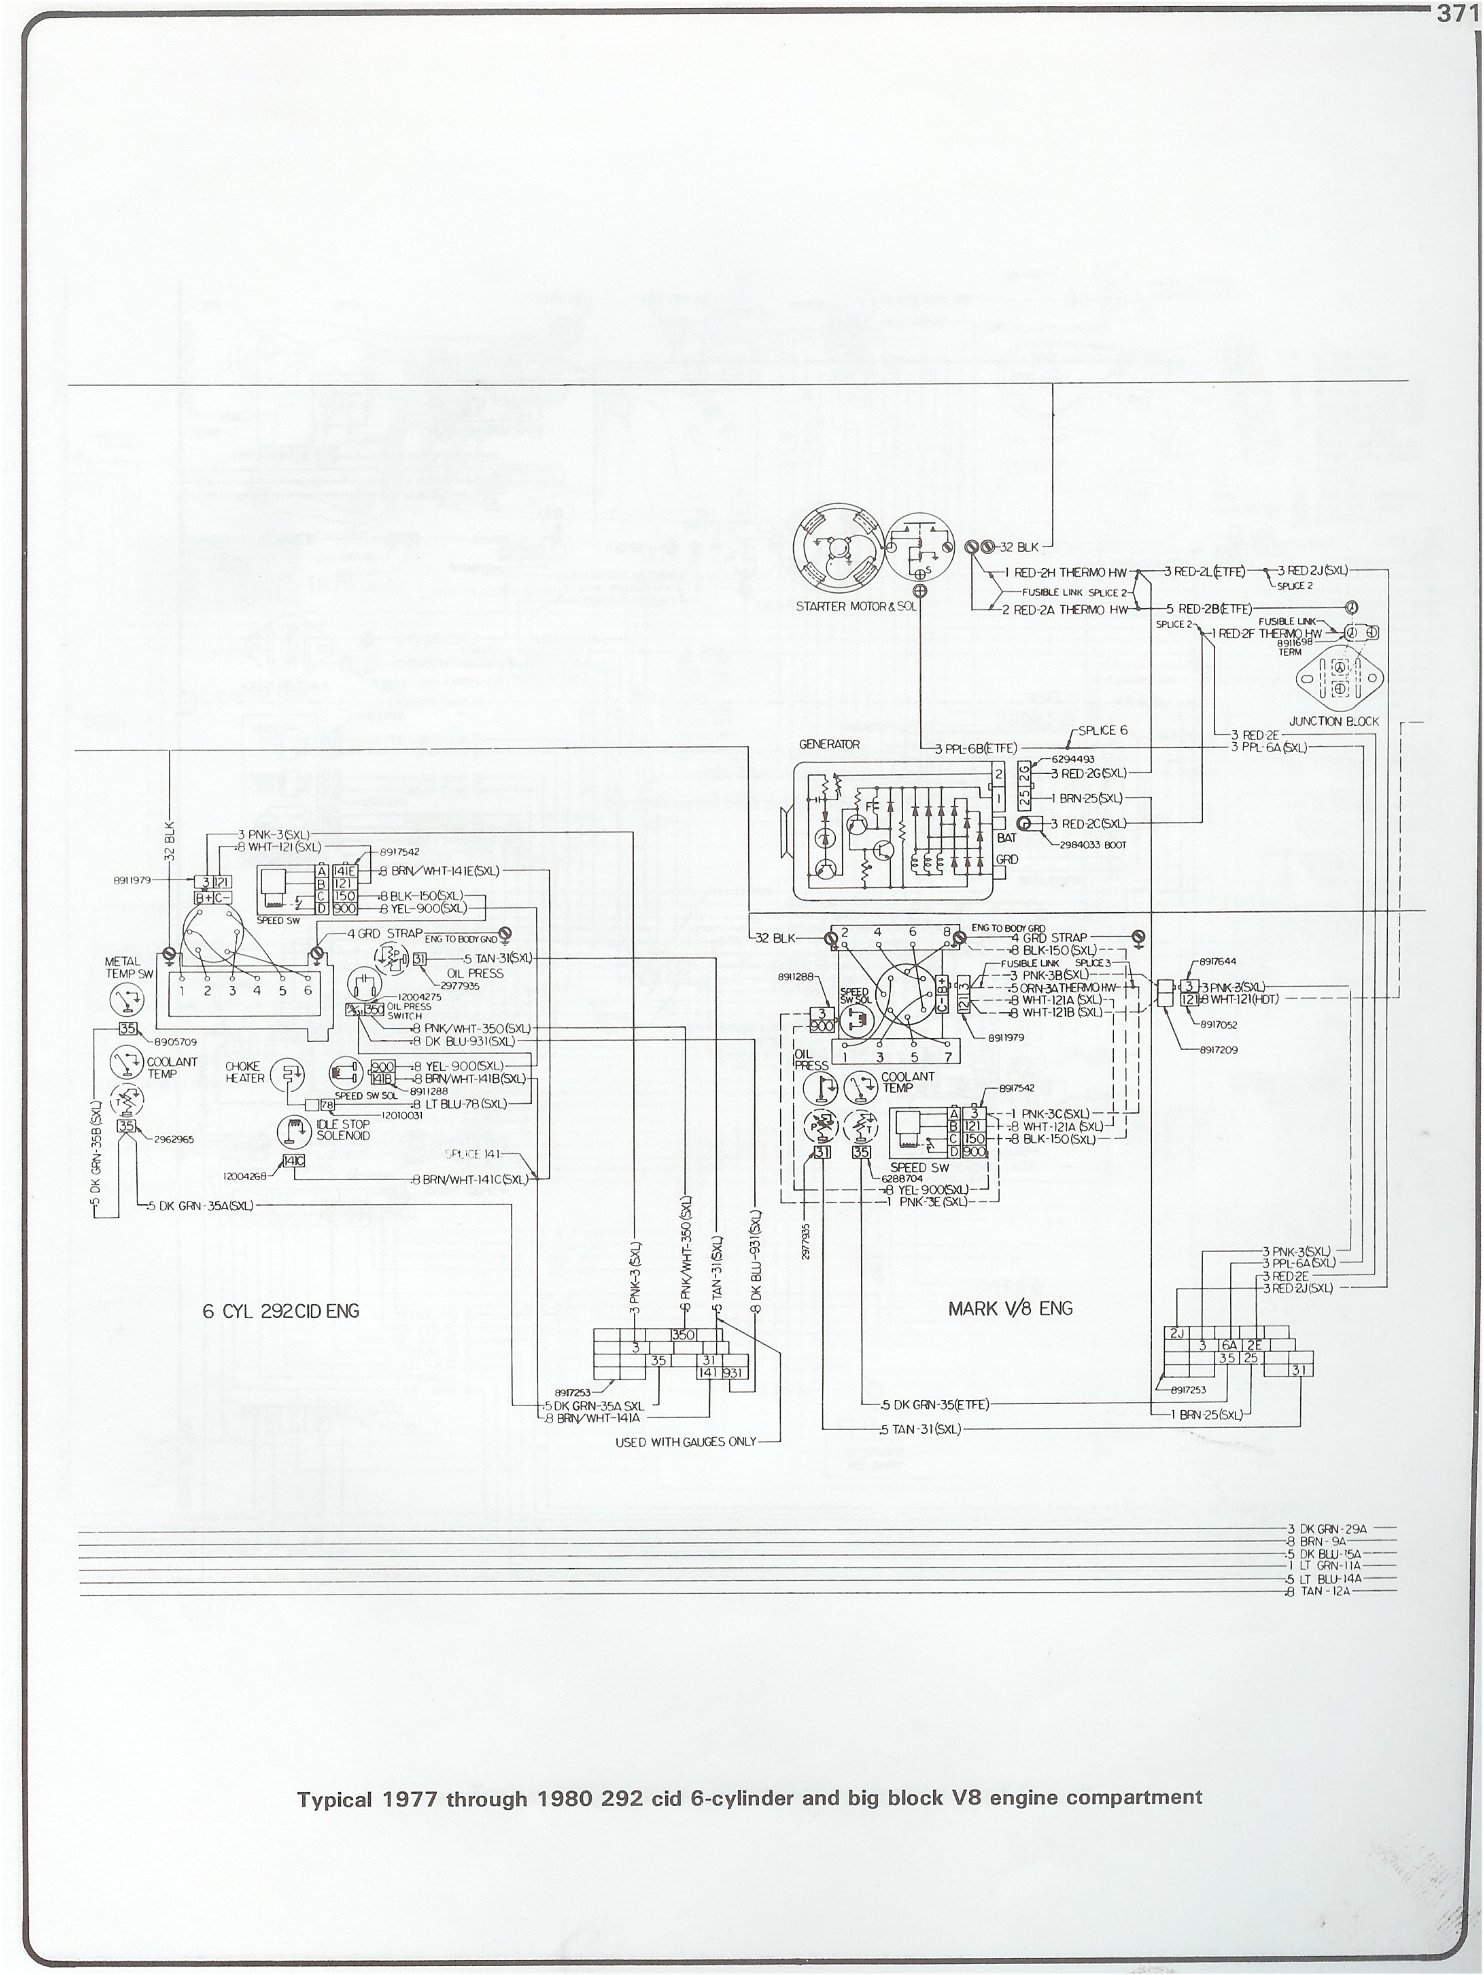 77 gmc wiring diagram under hood wiring schematic for 1978 cheny blazer | chevy ... 77 gmc wiring